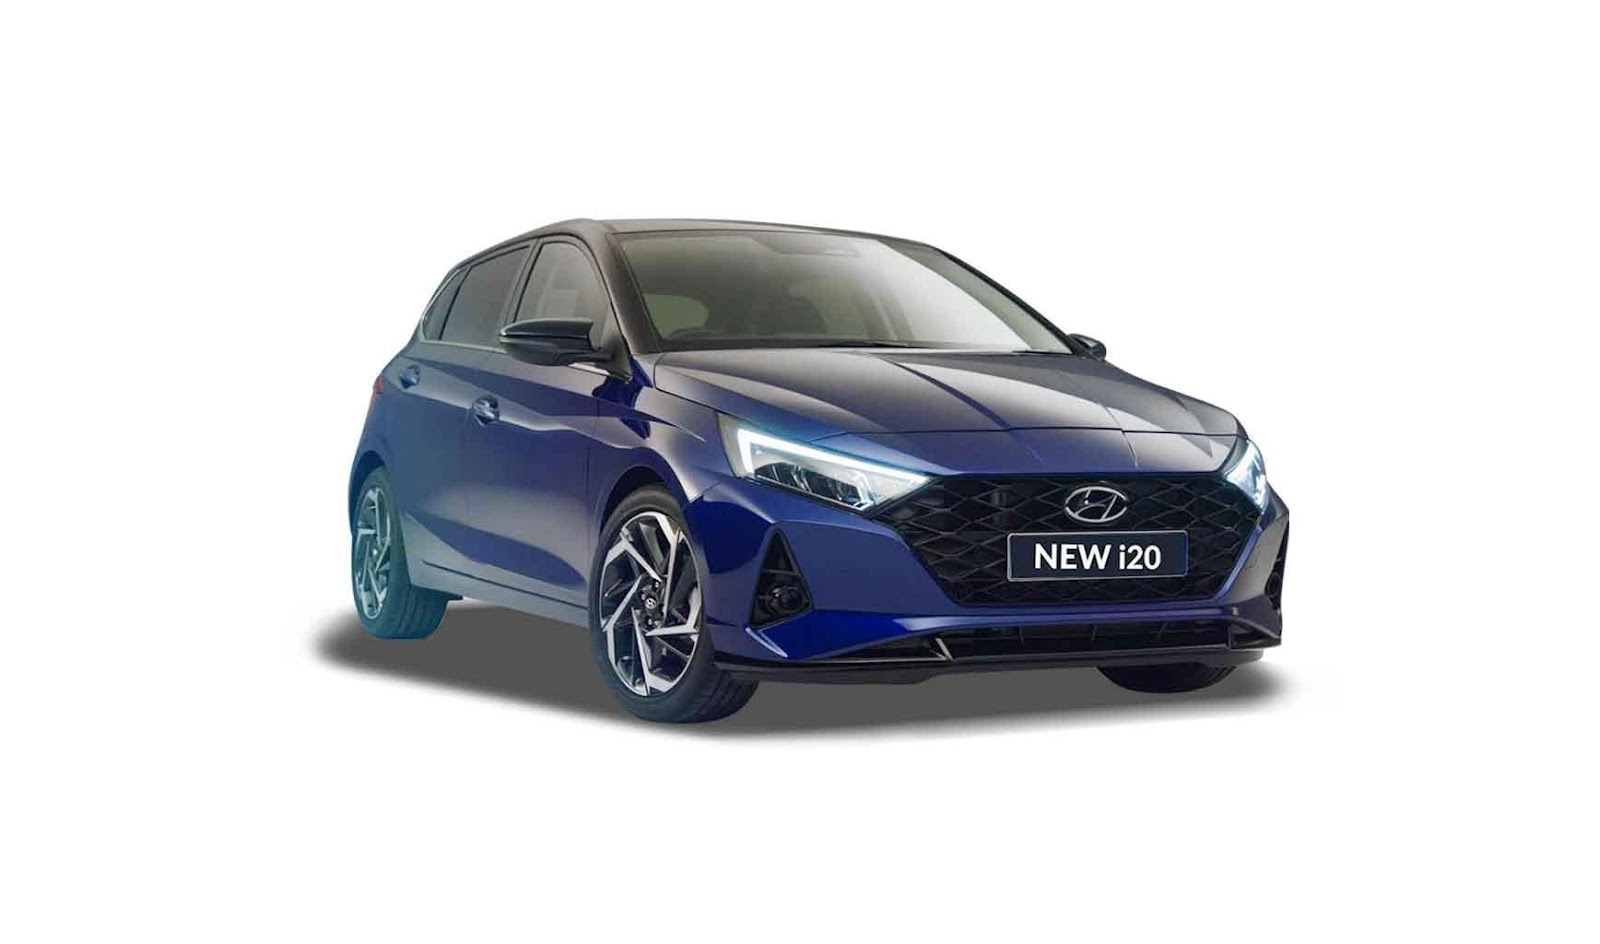 under-10-lakhs-upcoming-car-india-hyundai-i20